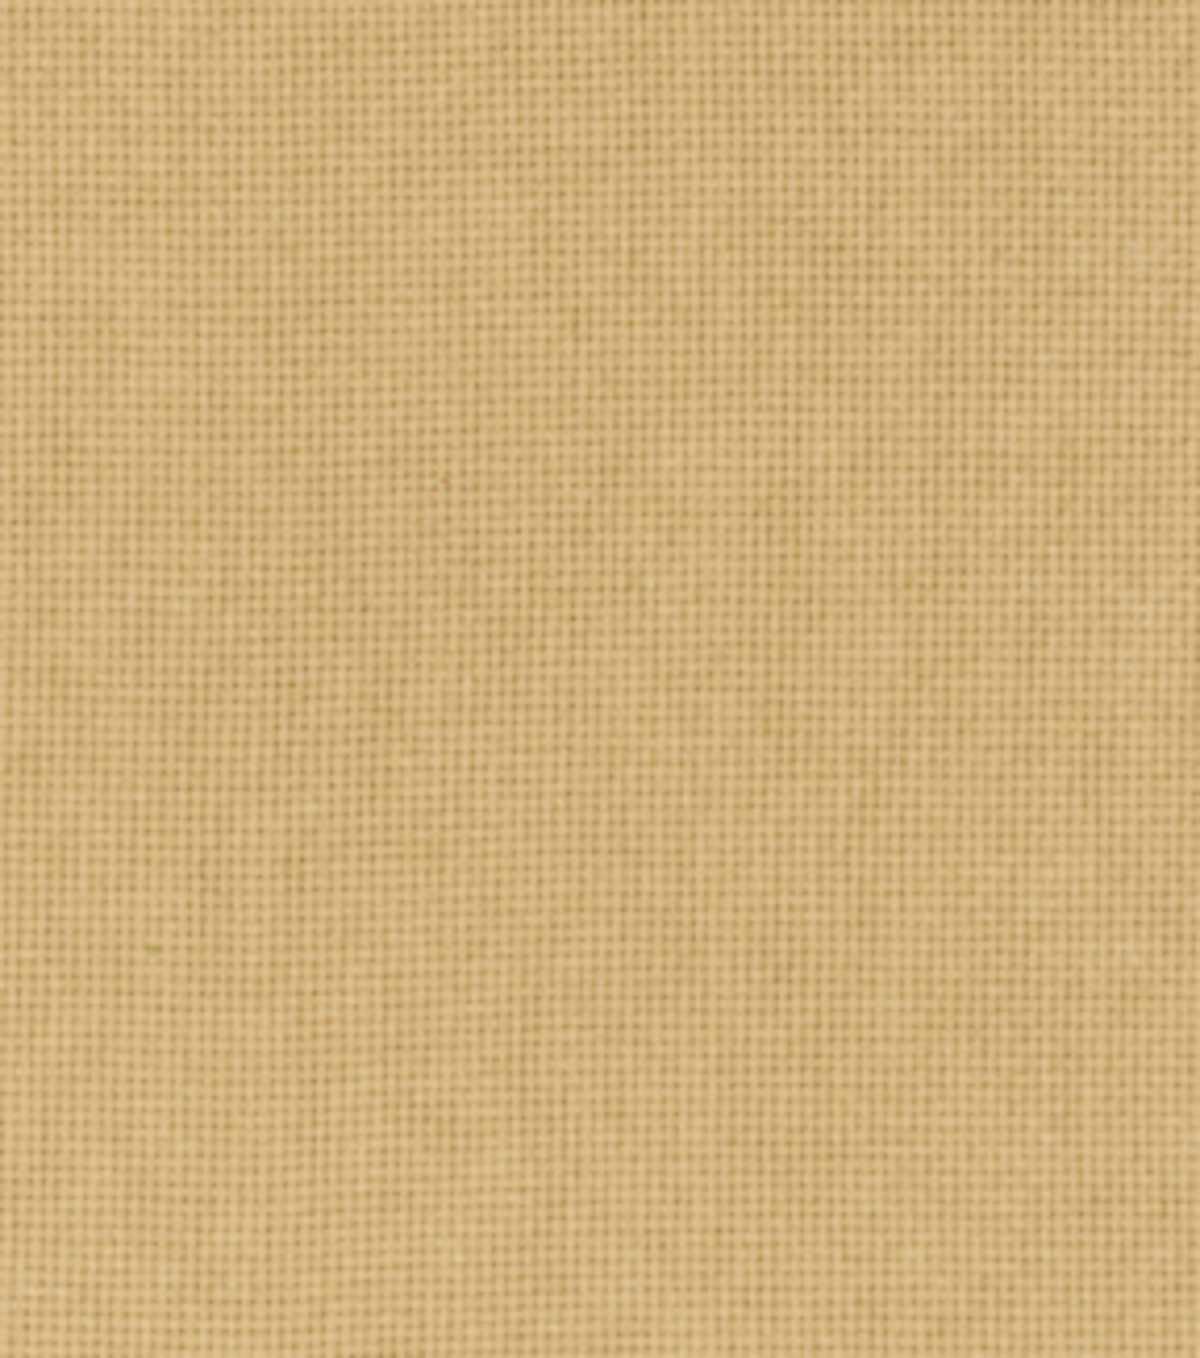 Home Decor 8\u0022x8\u0022 Fabric Swatch-Eaton Square Pitta Chamois